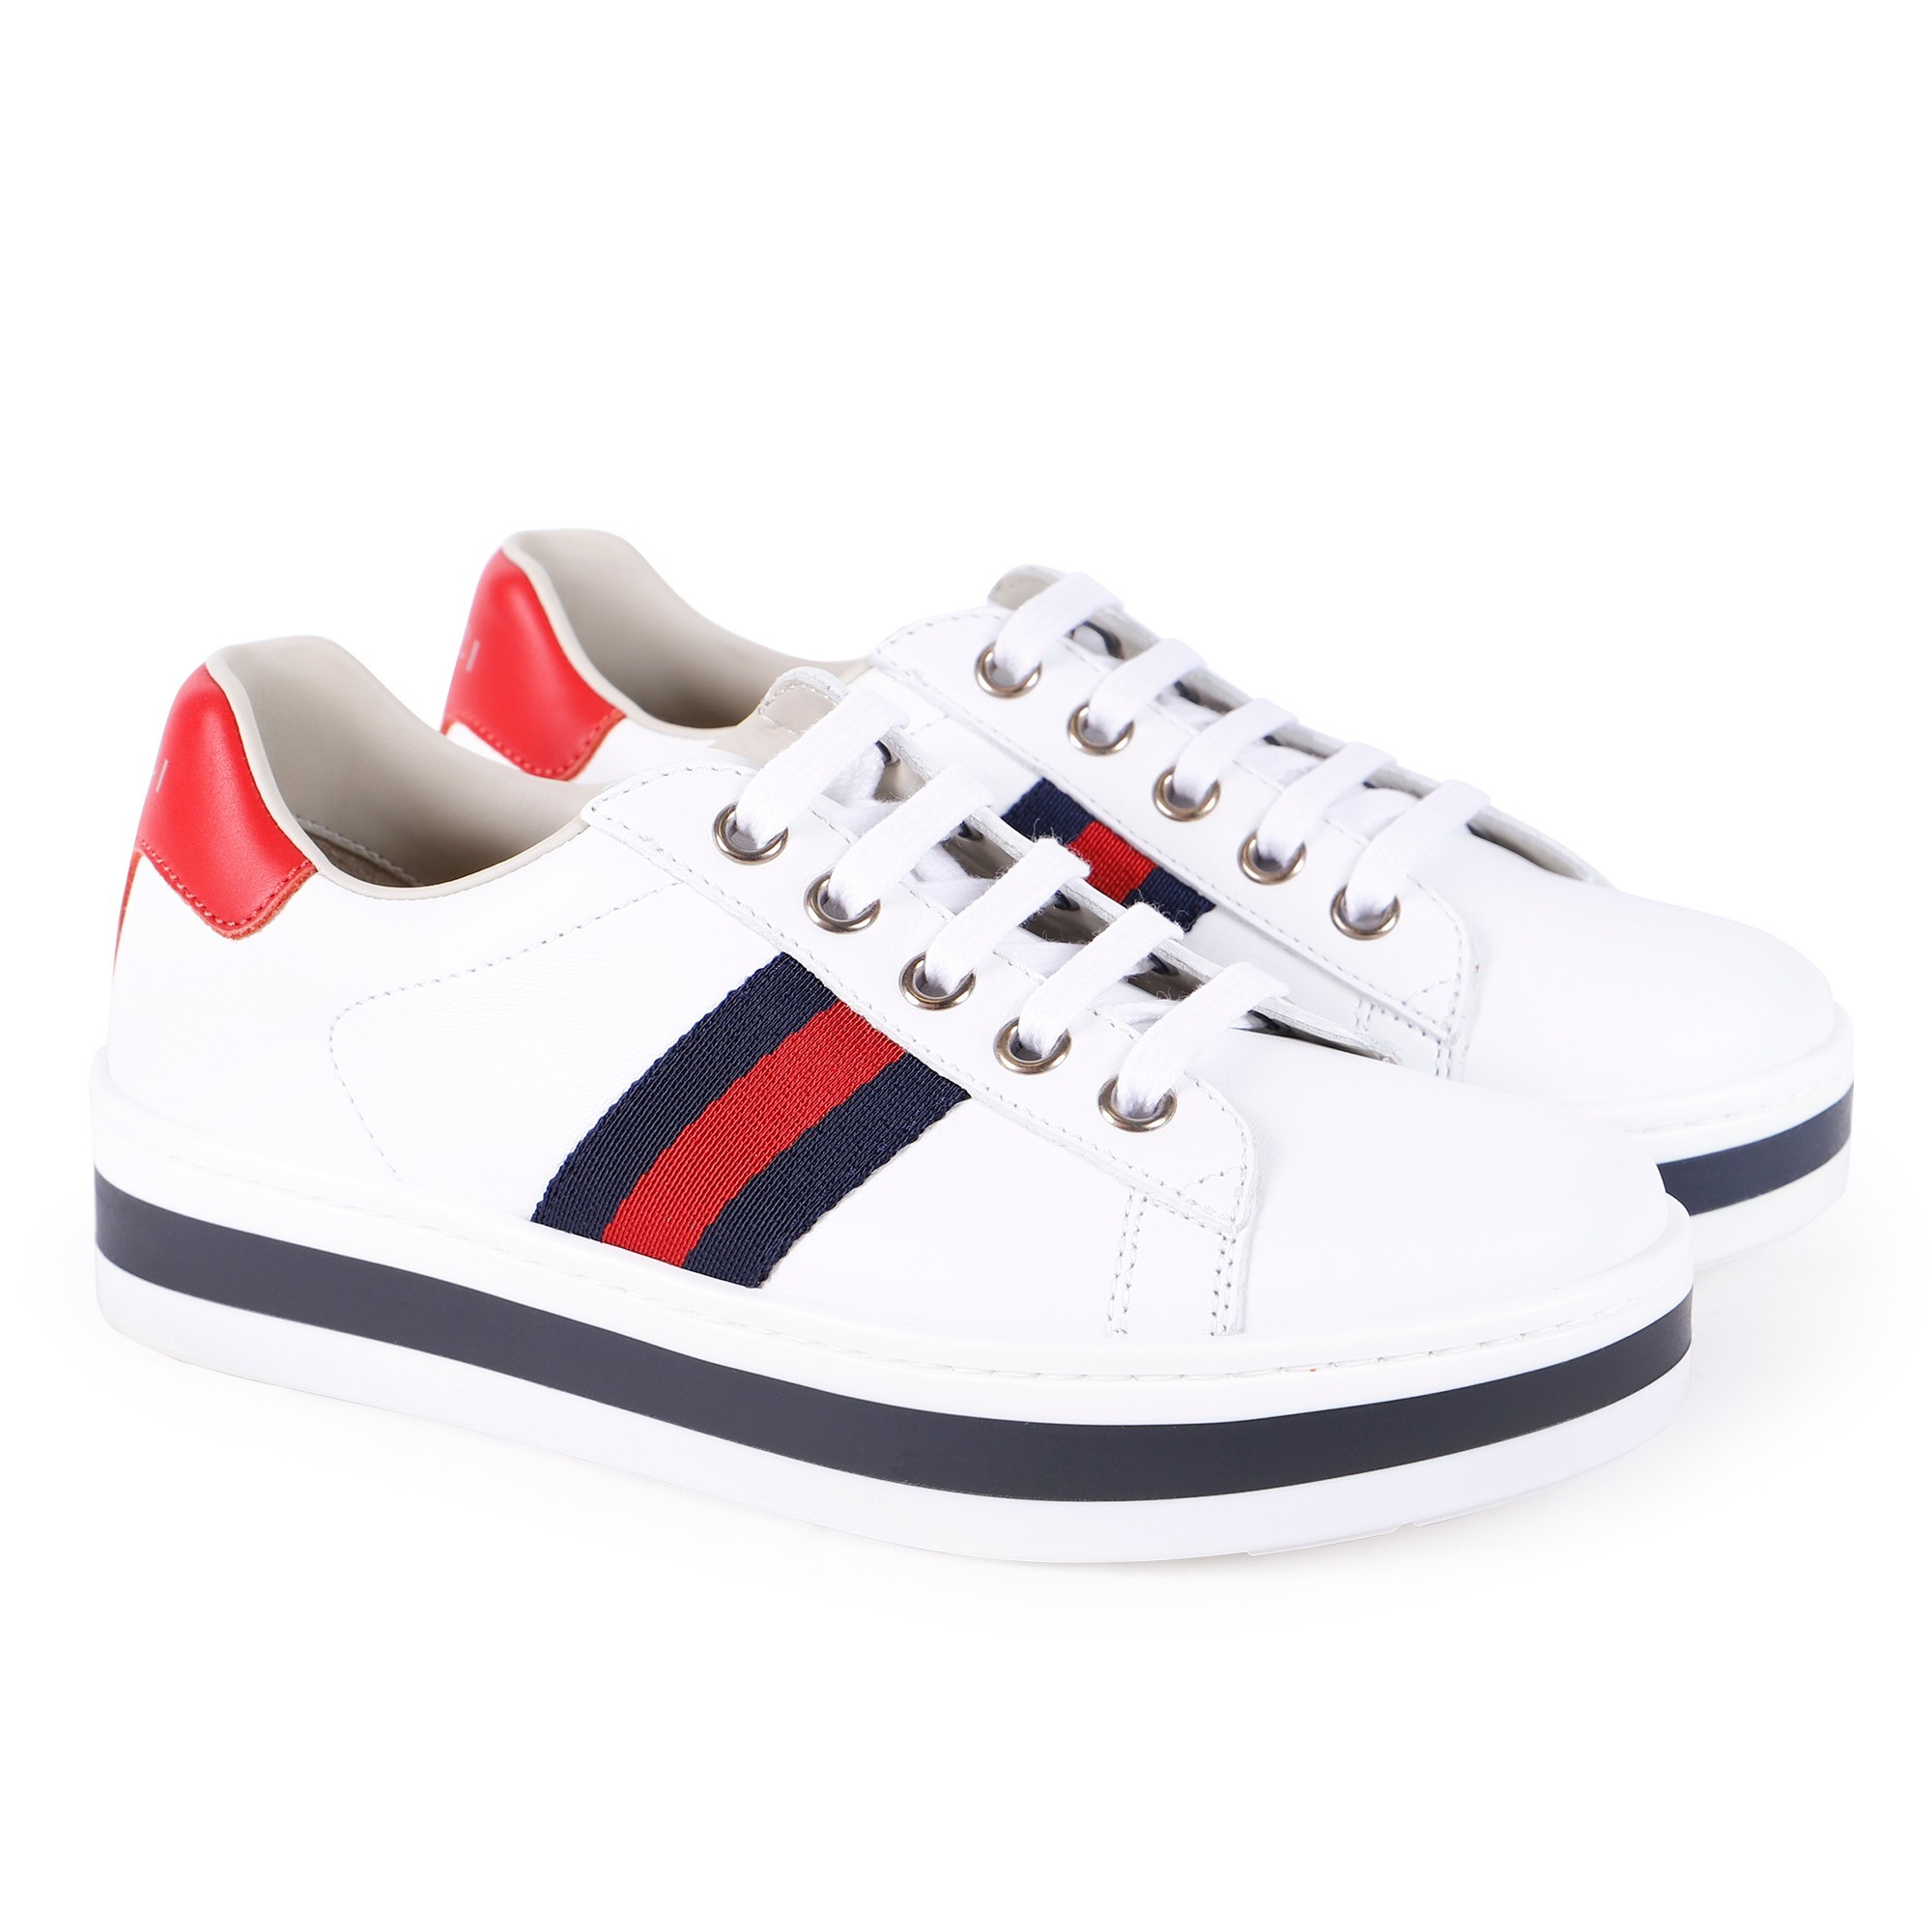 Gucci Platform Lace Up Sneakers In White Bambini Fashion